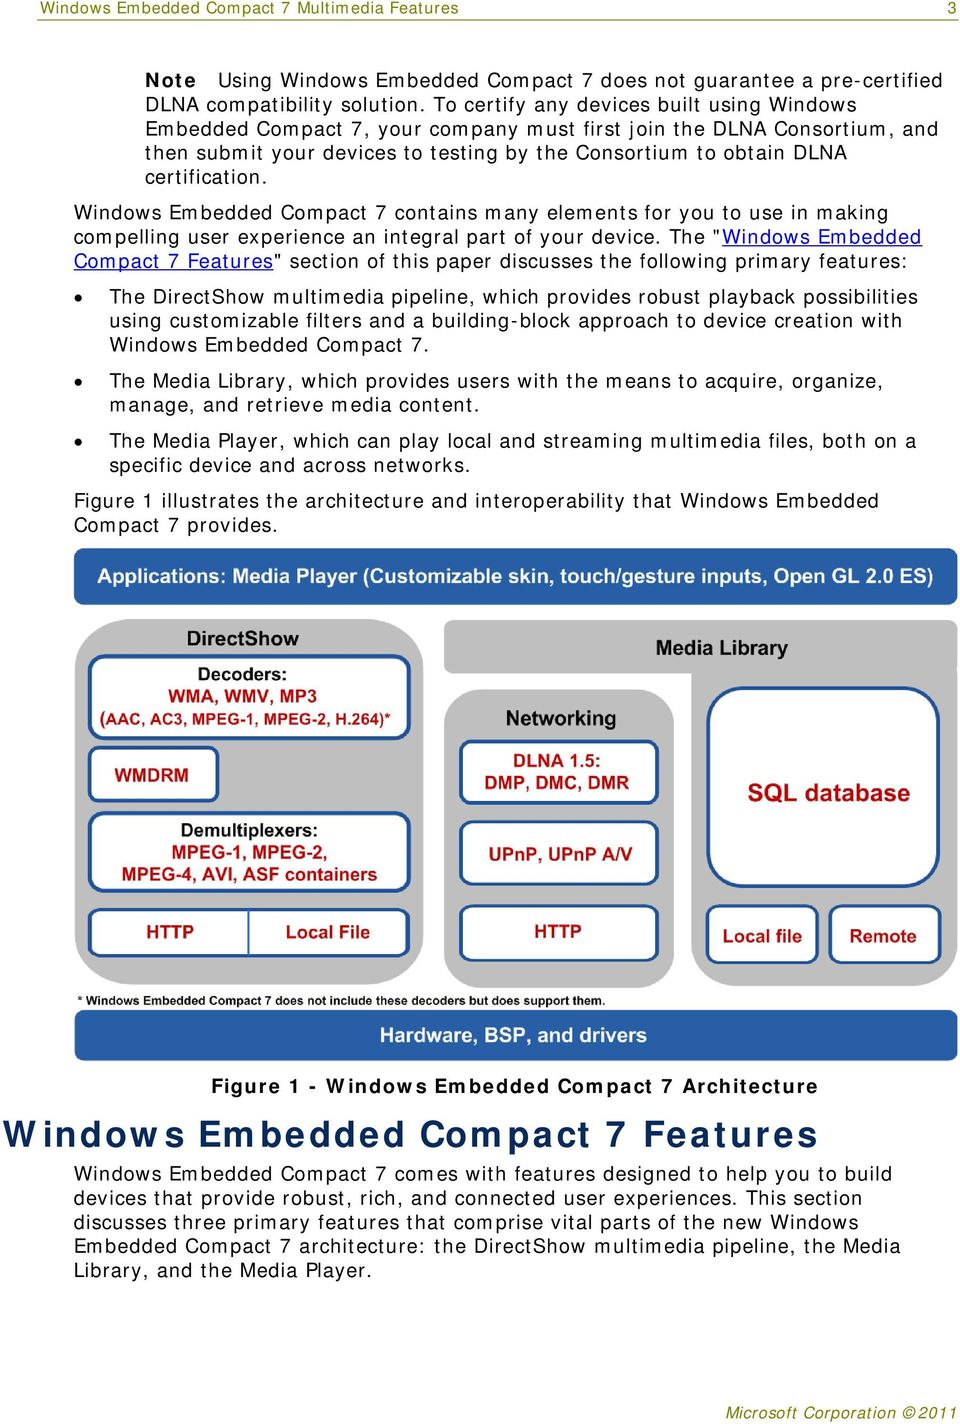 Windows Embedded Compact 7 contains many elements for you to use in making compelling user experience an integral part of your device.